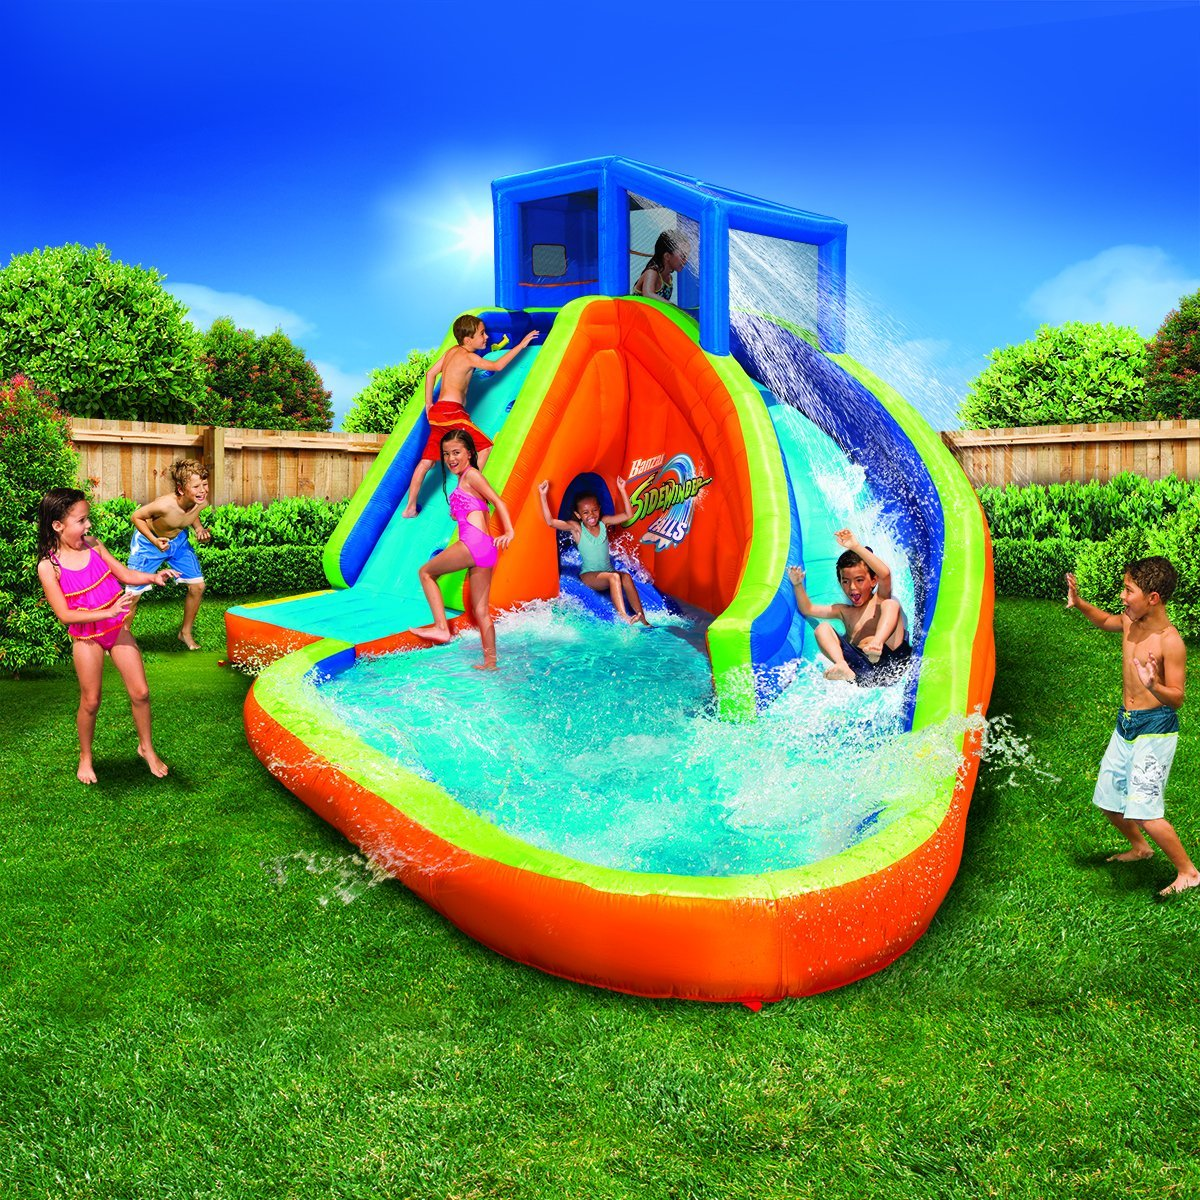 Top10 Best Inflatable Water Slides In 2019 Reviews